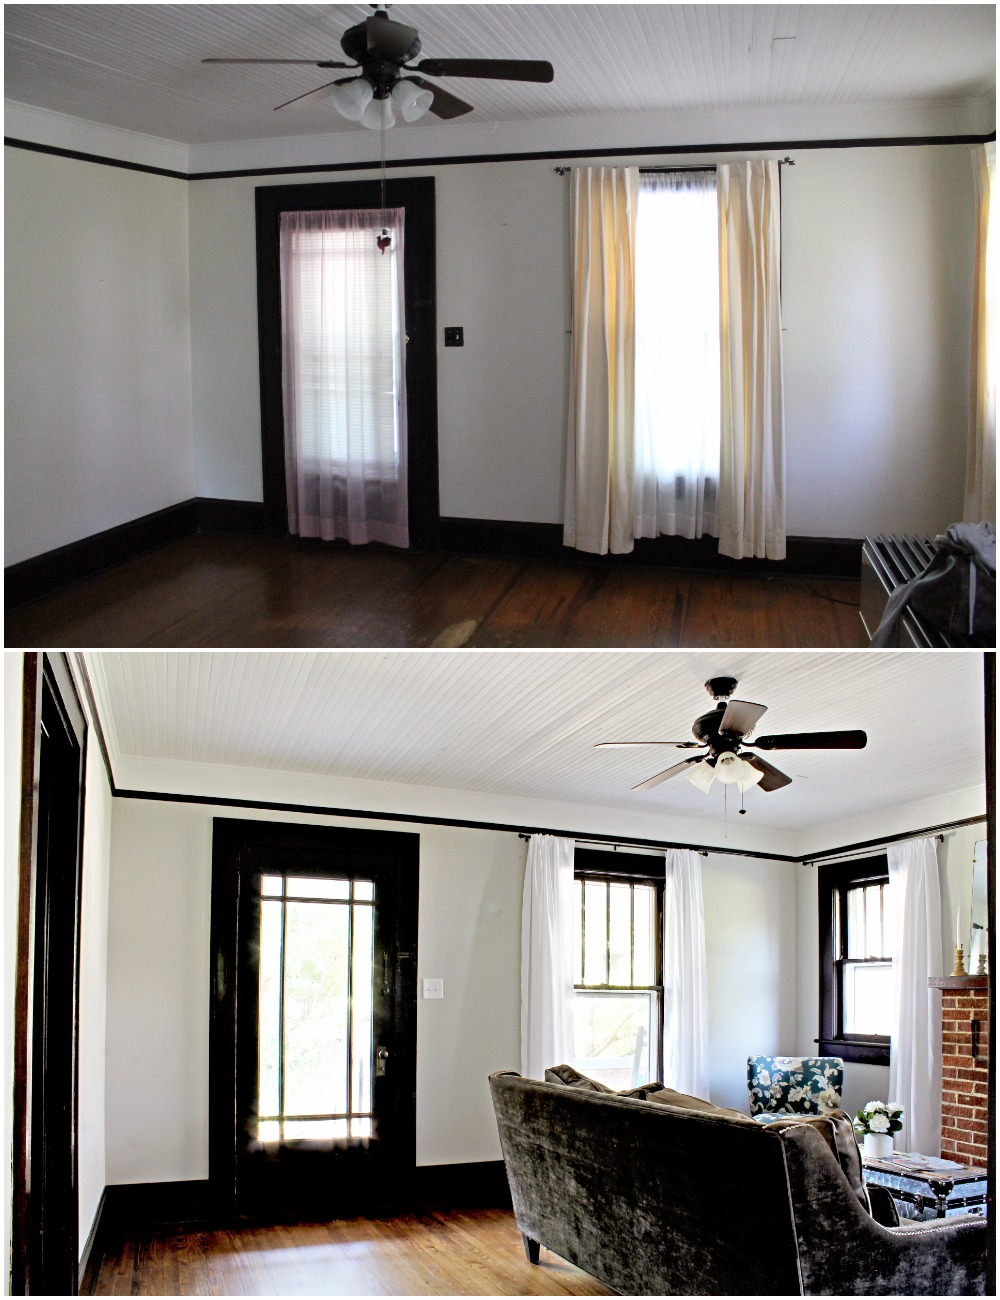 House Flipping Before and Afters - Living Room Budget Renovation Remodel, Wood Trim Paint Colors - Sherwin Williams Repose Gray (4).jpg